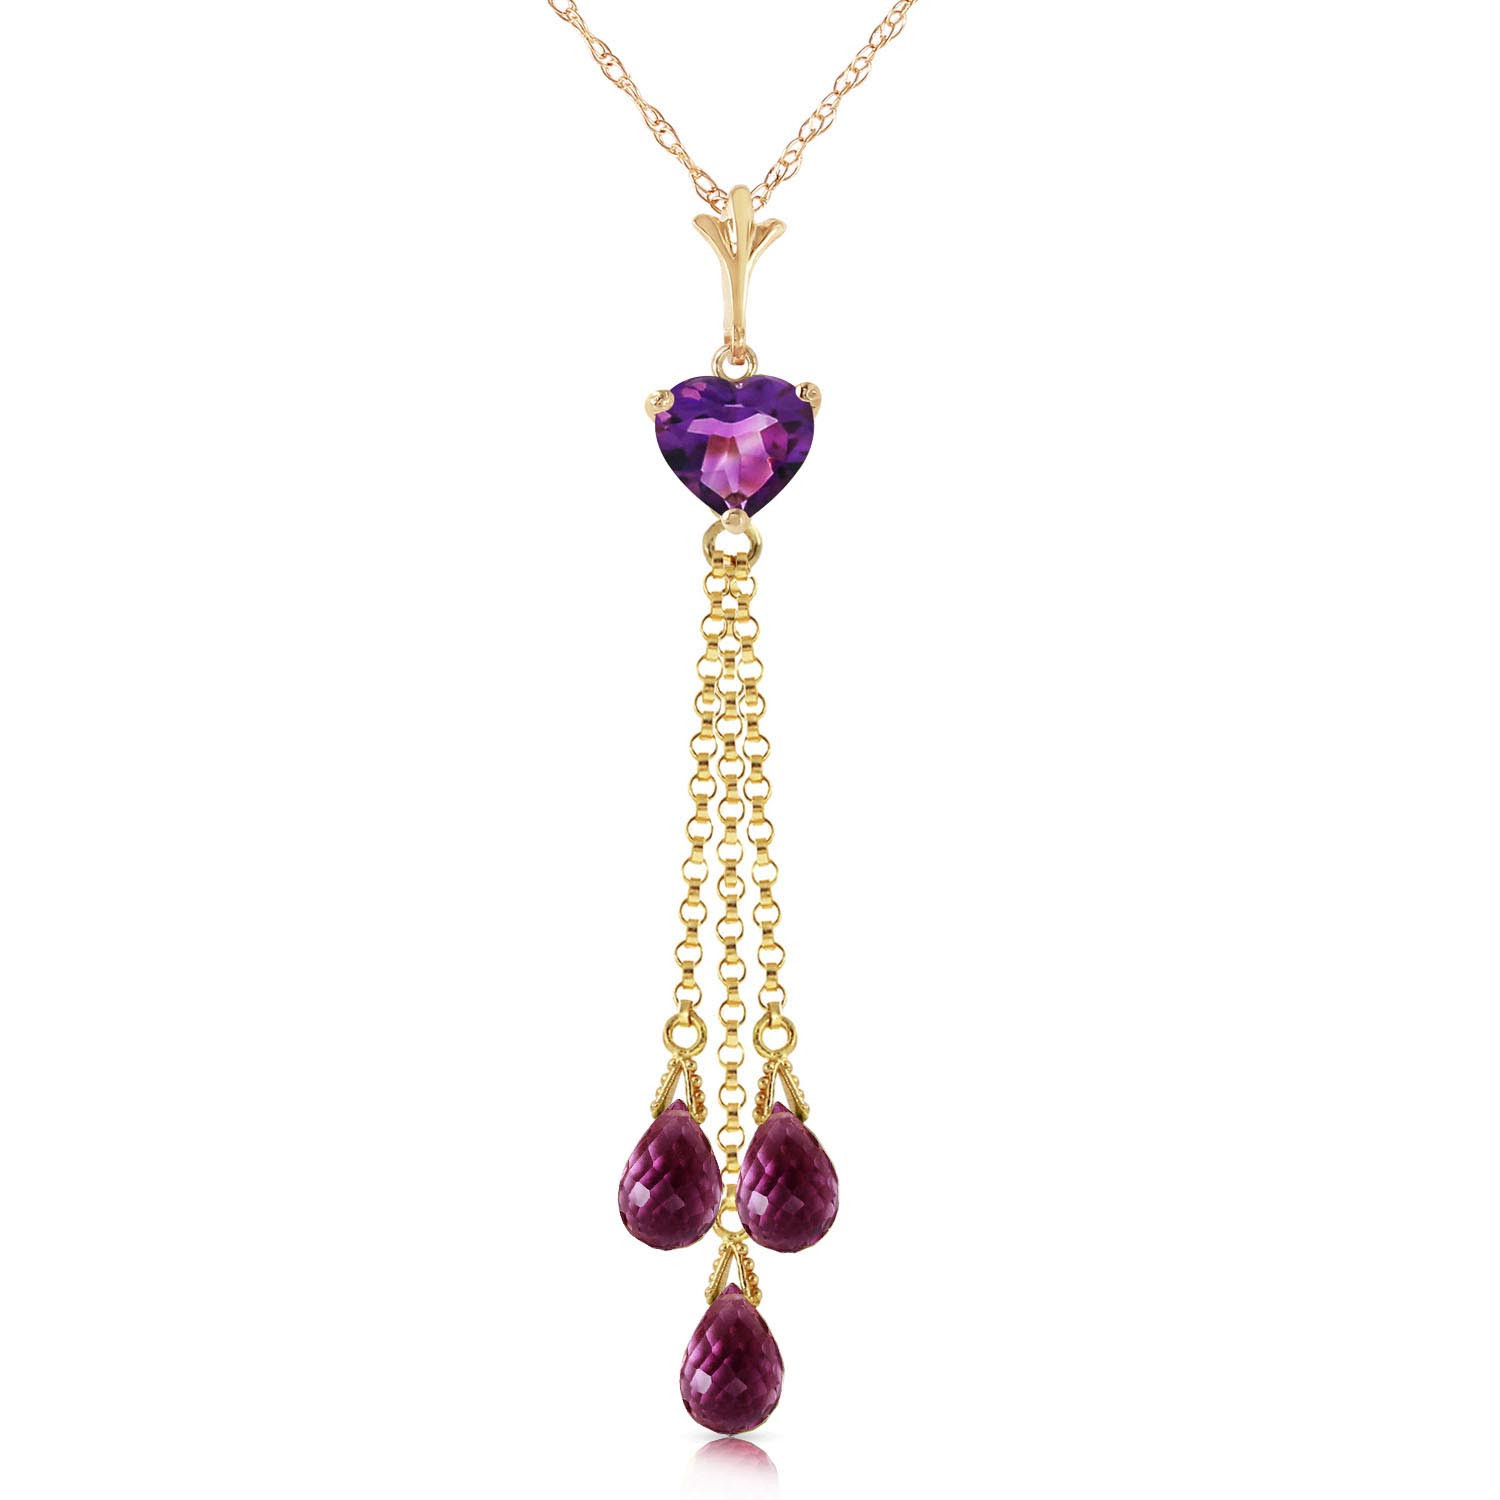 Amethyst Comet Tail Pendant Necklace 4.75 ctw in 9ct Gold